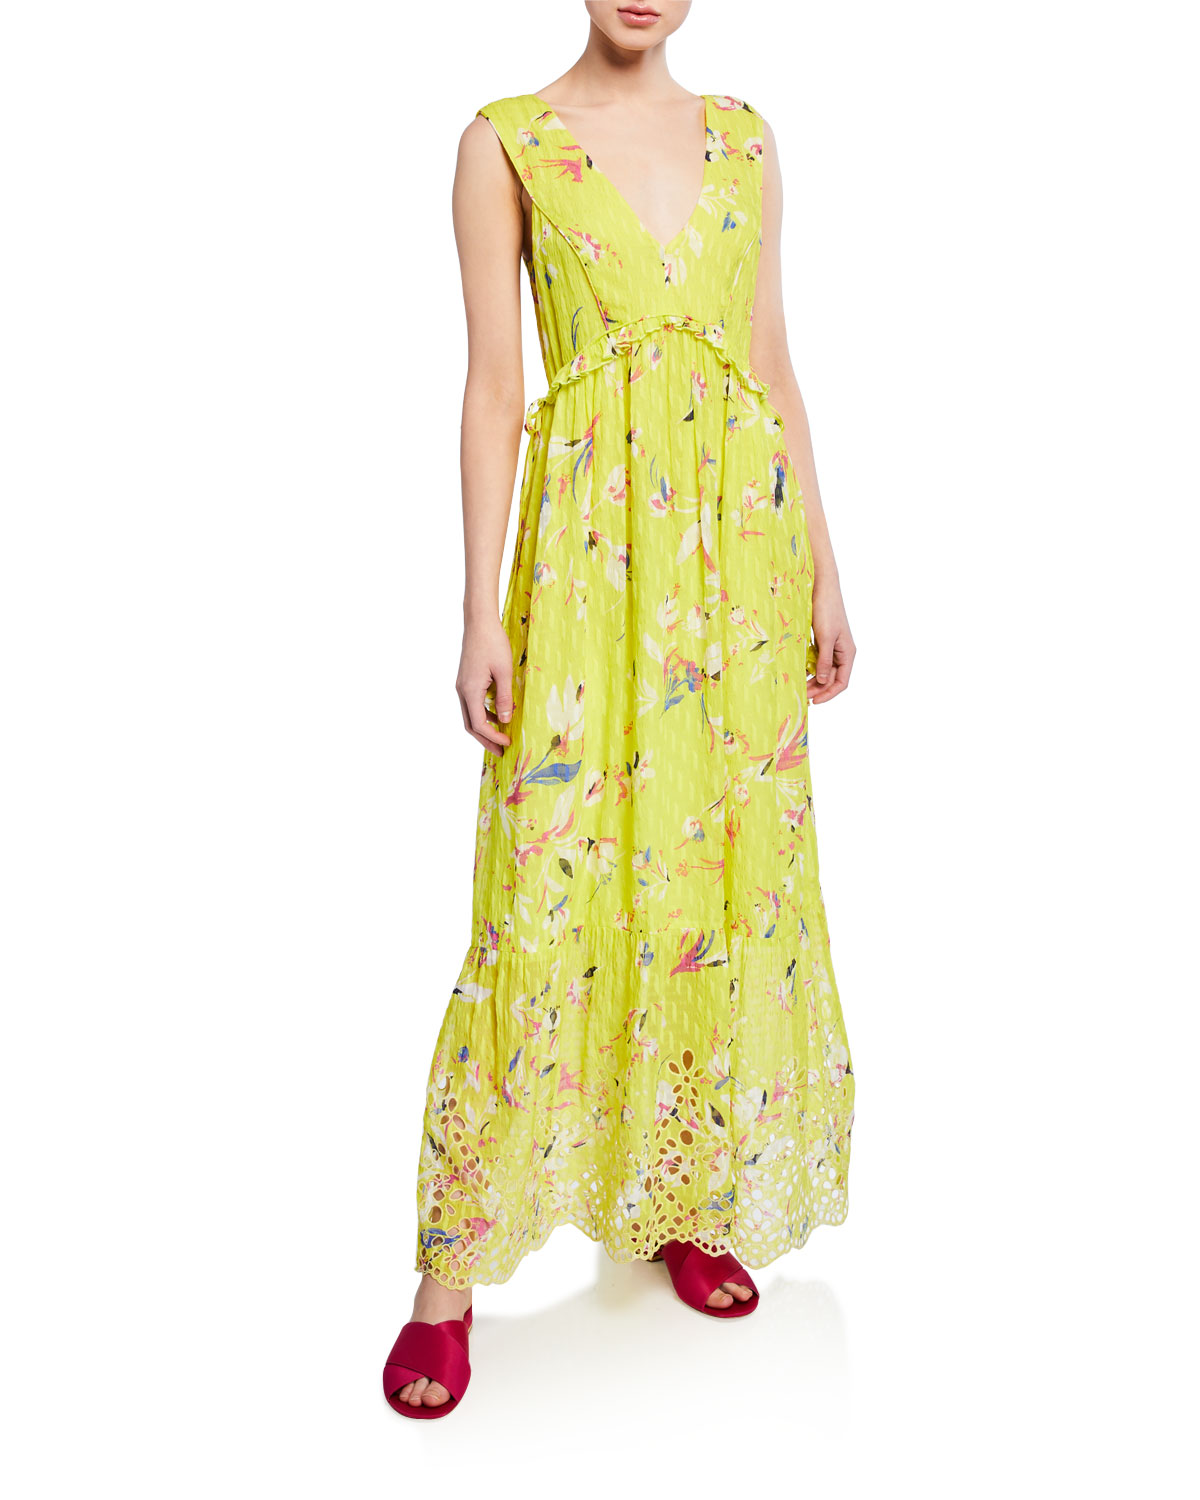 1b38371b278 Tanya Taylor Catalina Floral-Print V-Neck Sleeveless Maxi Dress ...